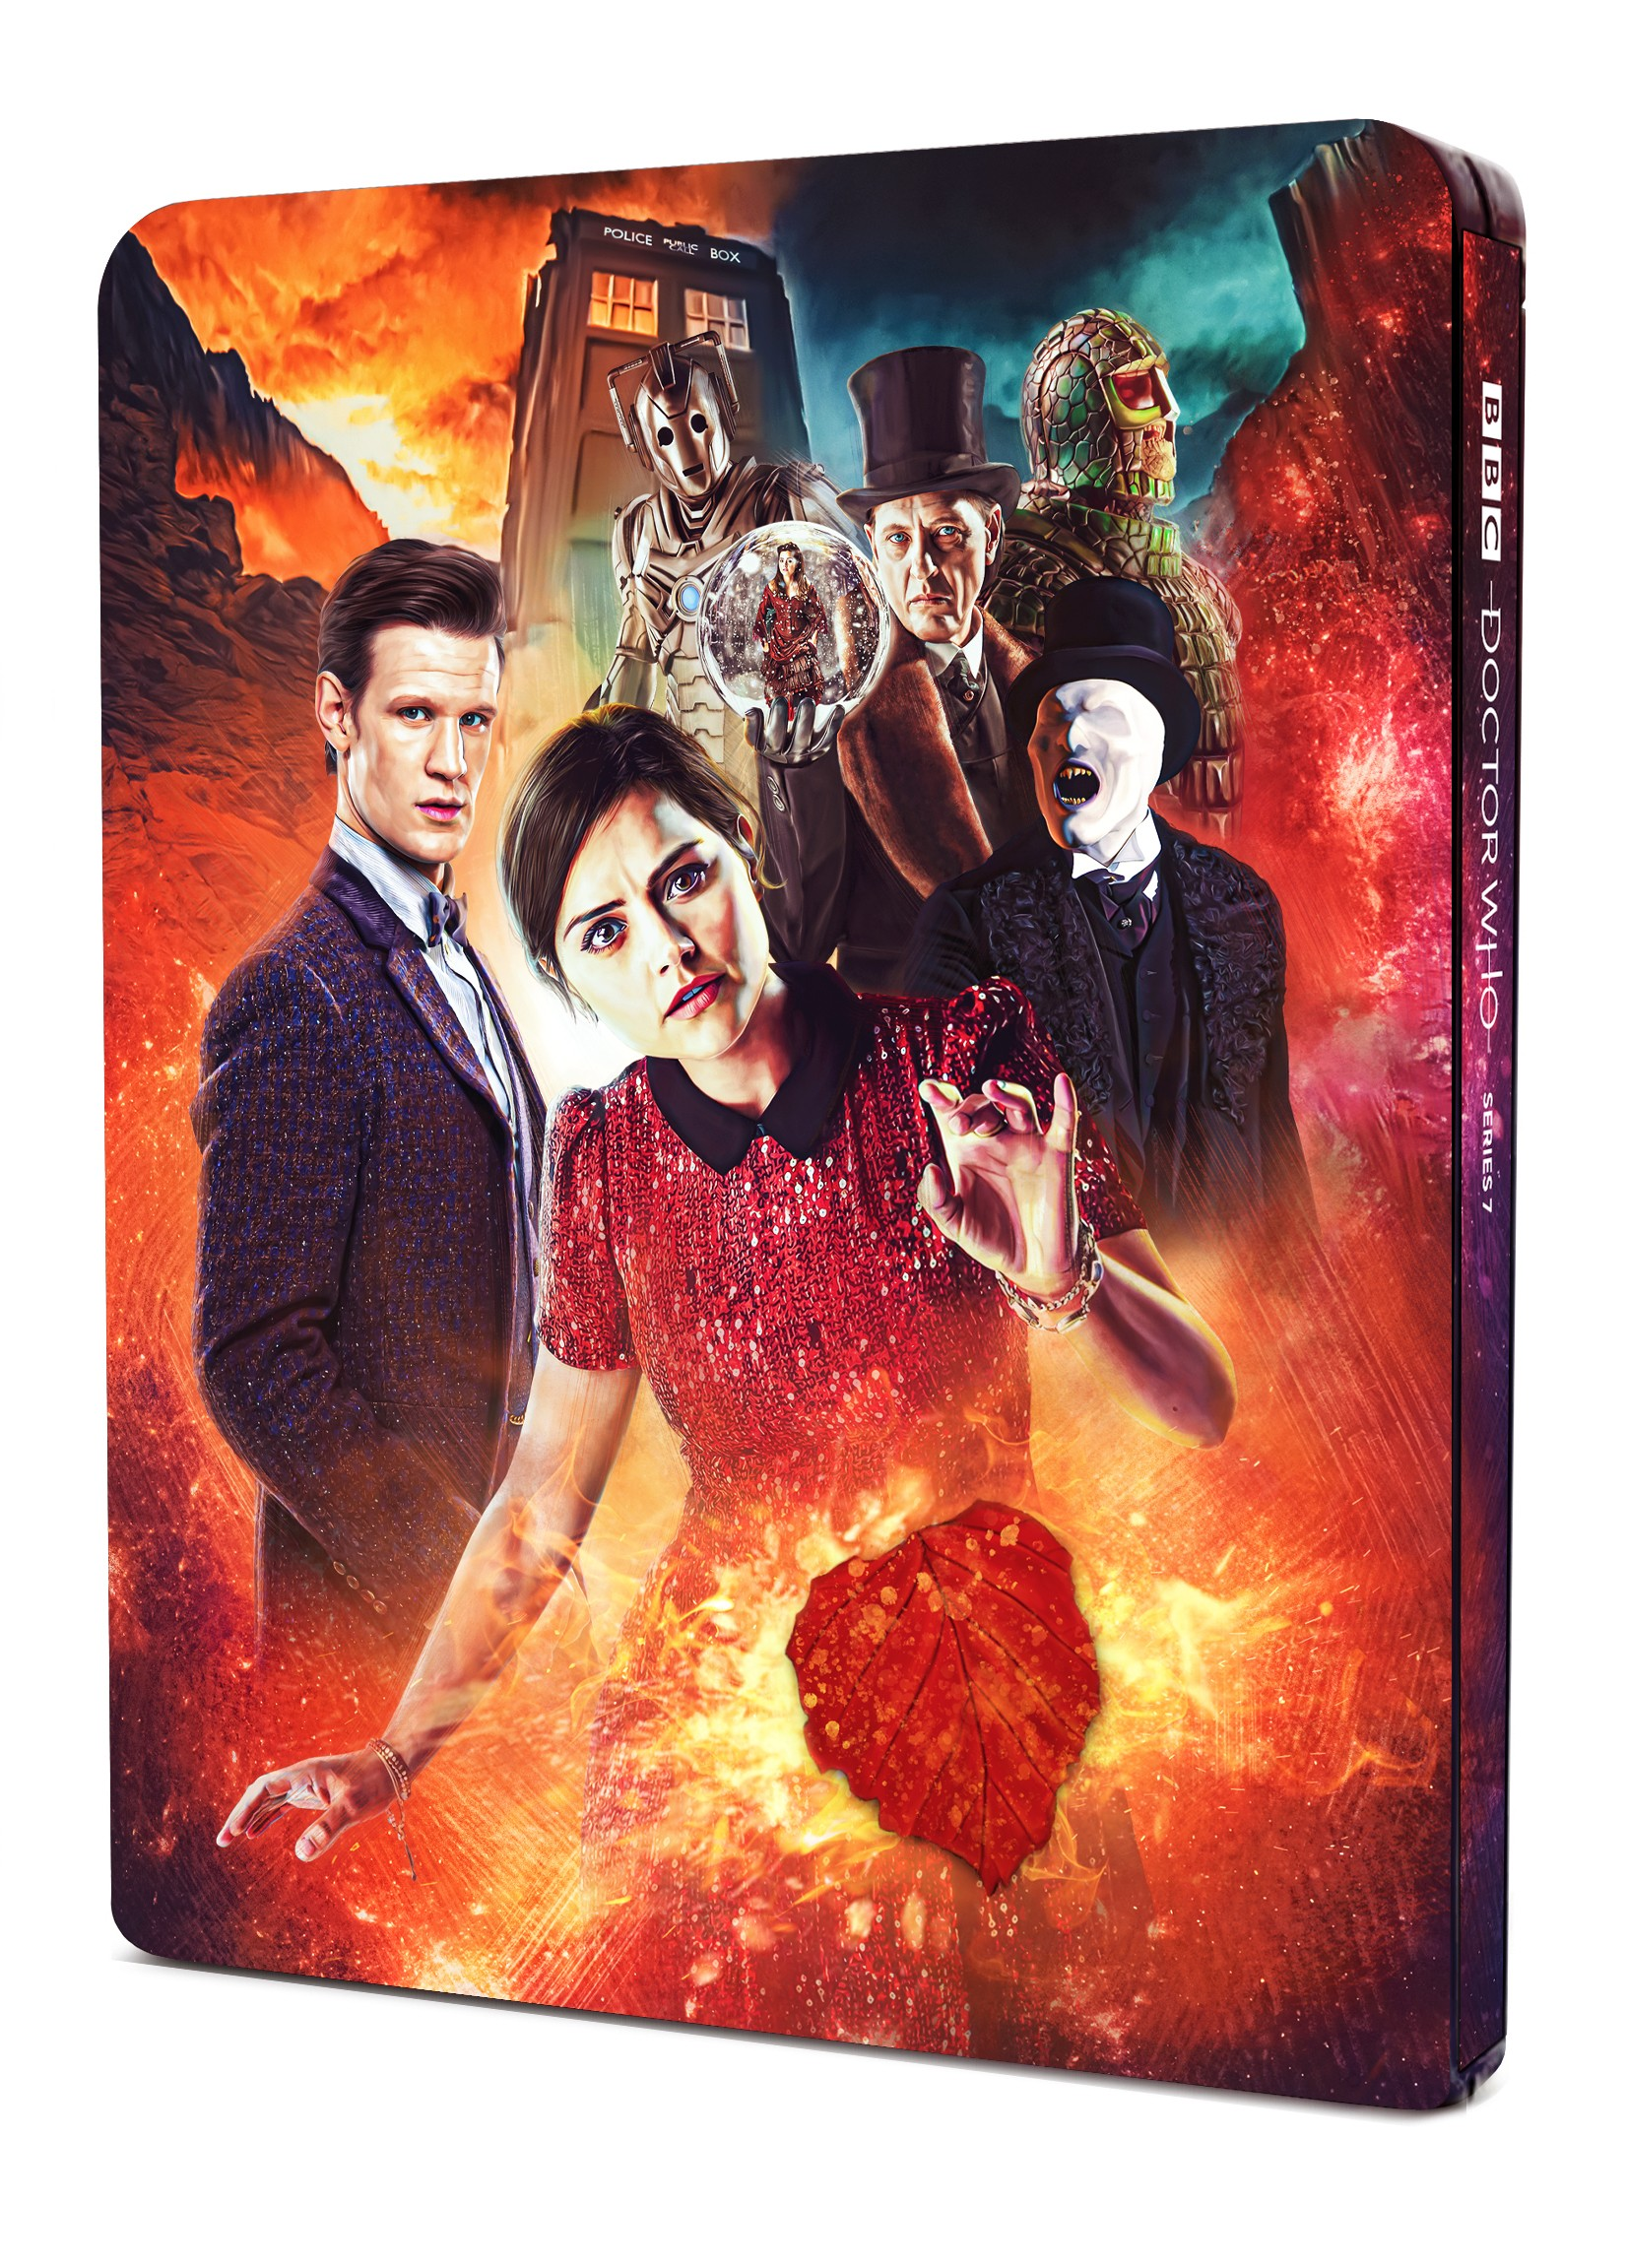 Doctor Who: The Complete Seventh Series Steelbook. Interior art by Lee Binding (c) BBC Studios Eleventh Doctor Amy Pond Clara Oswald Jenna Coleman Karen Gillan Matt Smith